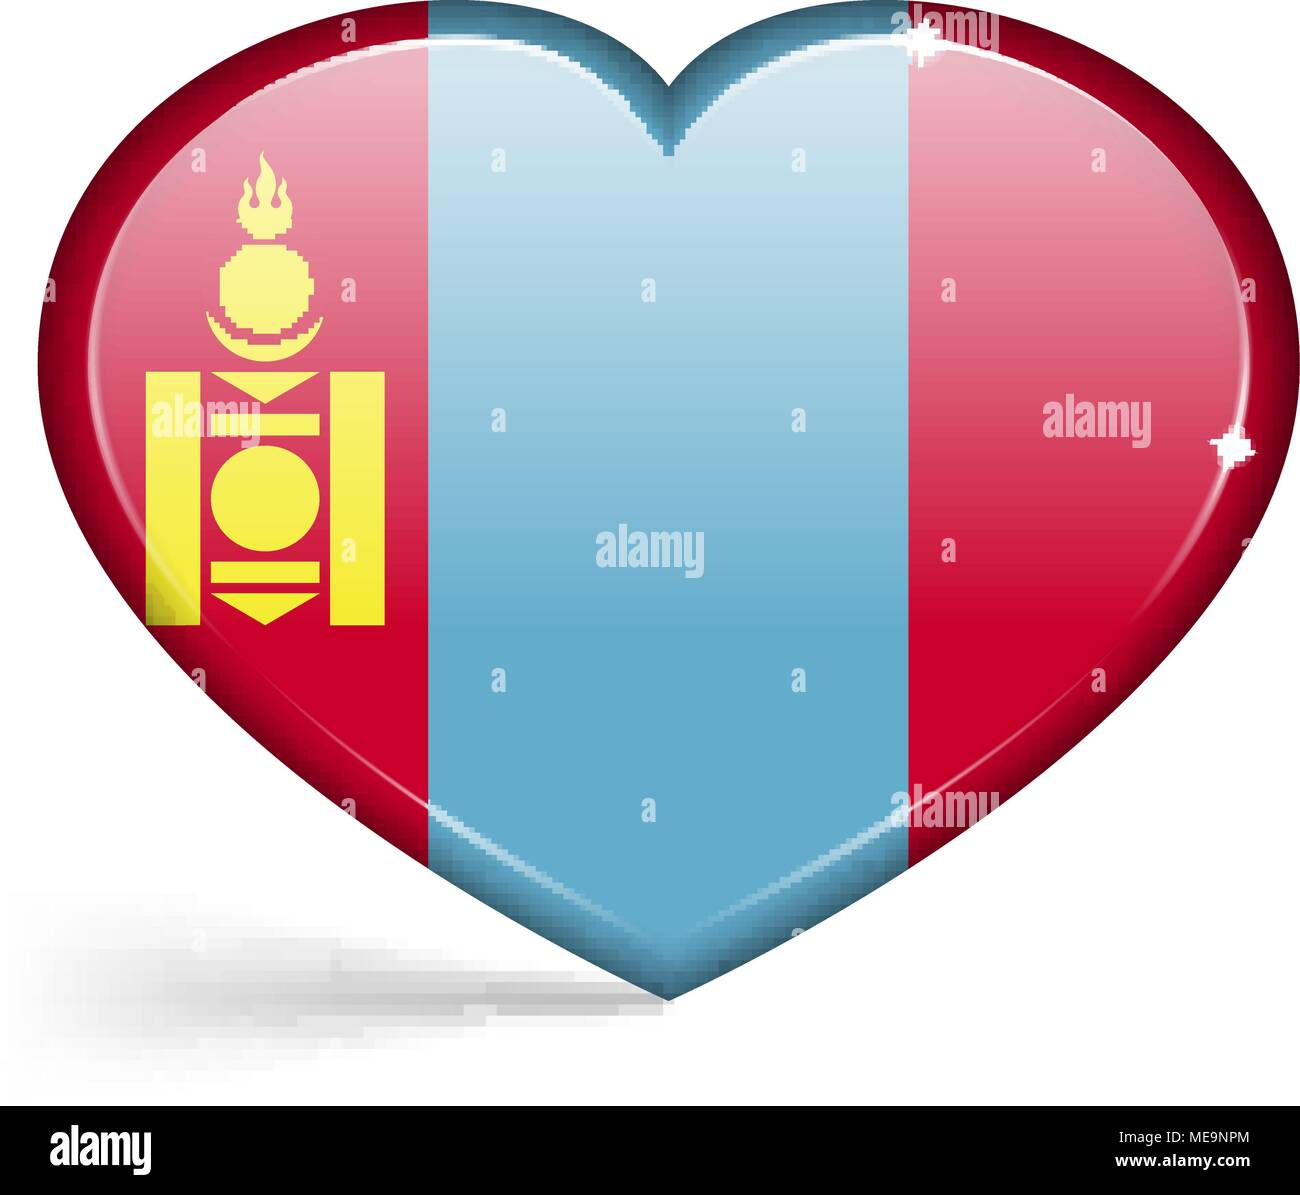 Flags of Mongolia in a heart shape with highlights on the edges. Vector illustration - Stock Vector